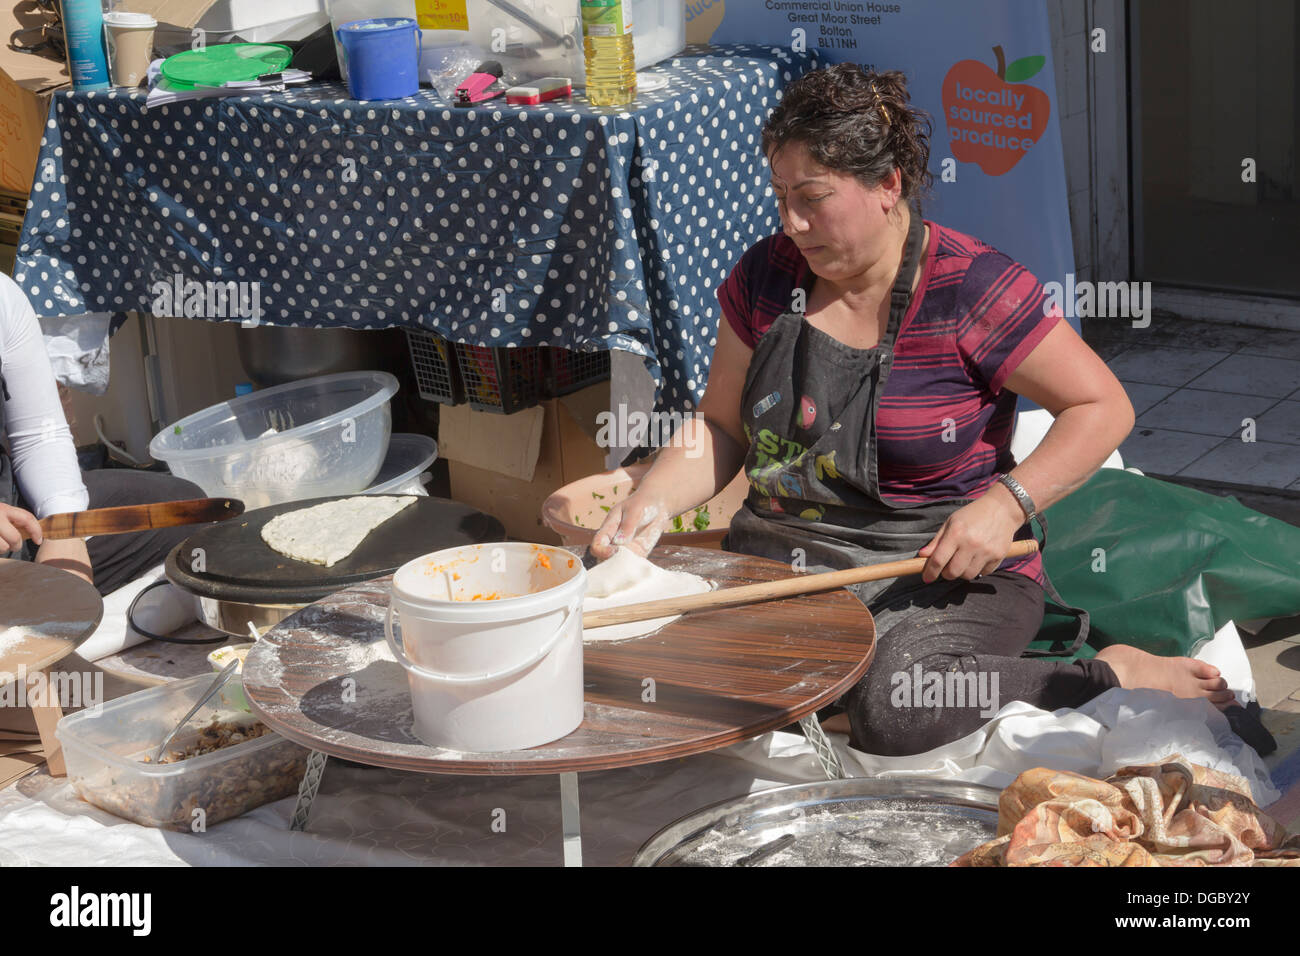 Members of the Lakamka project make Turkish bread at 'The Kitchen on Great Moor Street' stall at the Bolton Food Festival 2013. - Stock Image